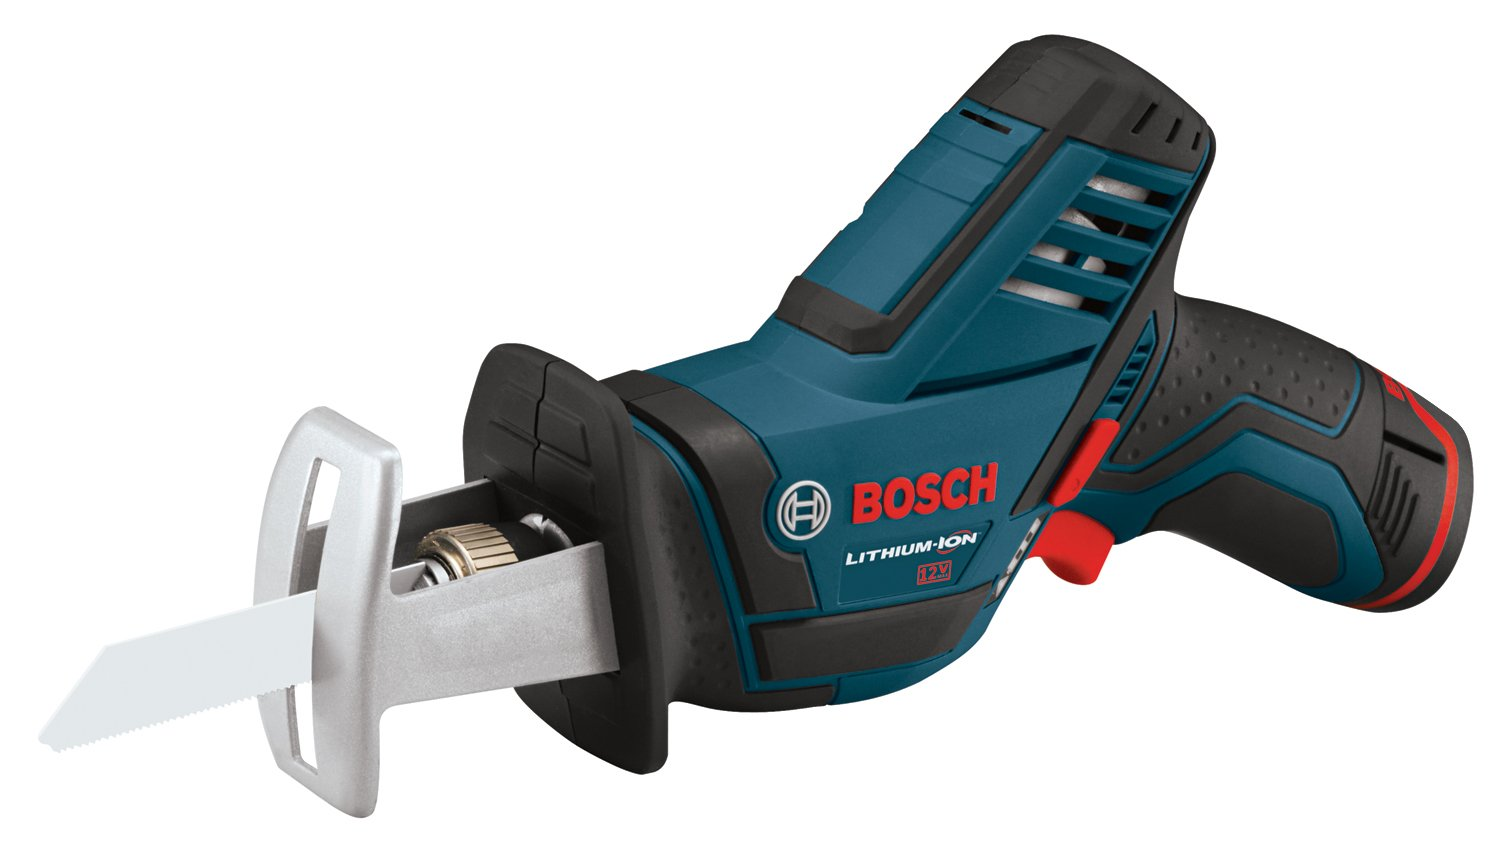 #3 - Bosch 12-Volt Max Pocket Reciprocating Saw Kit PS60-102